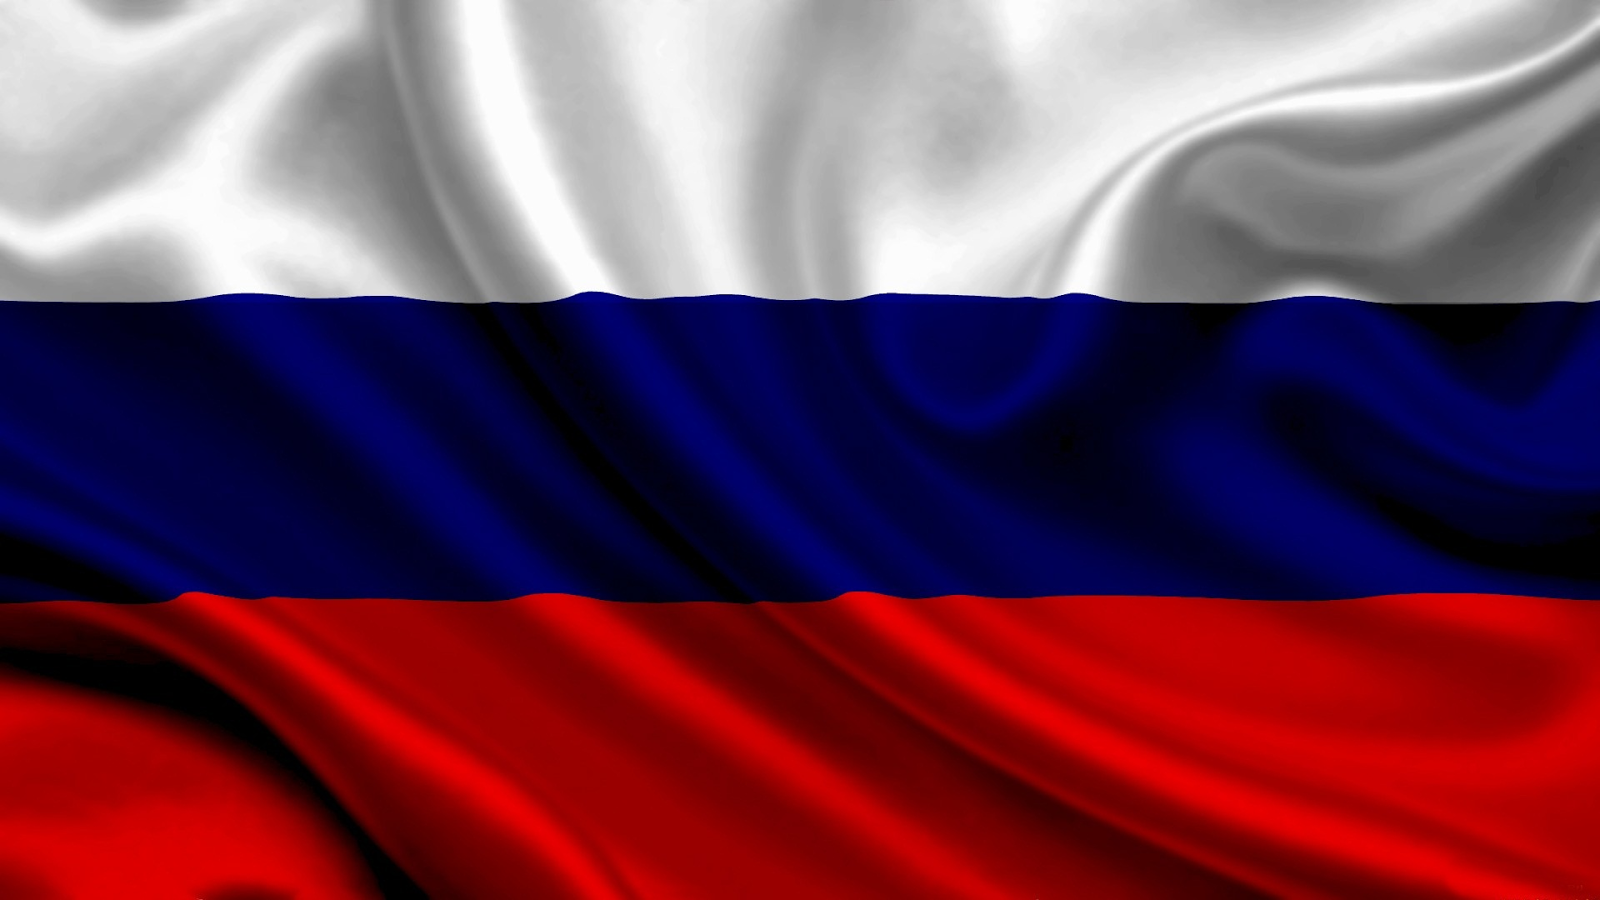 Russia flag PNG